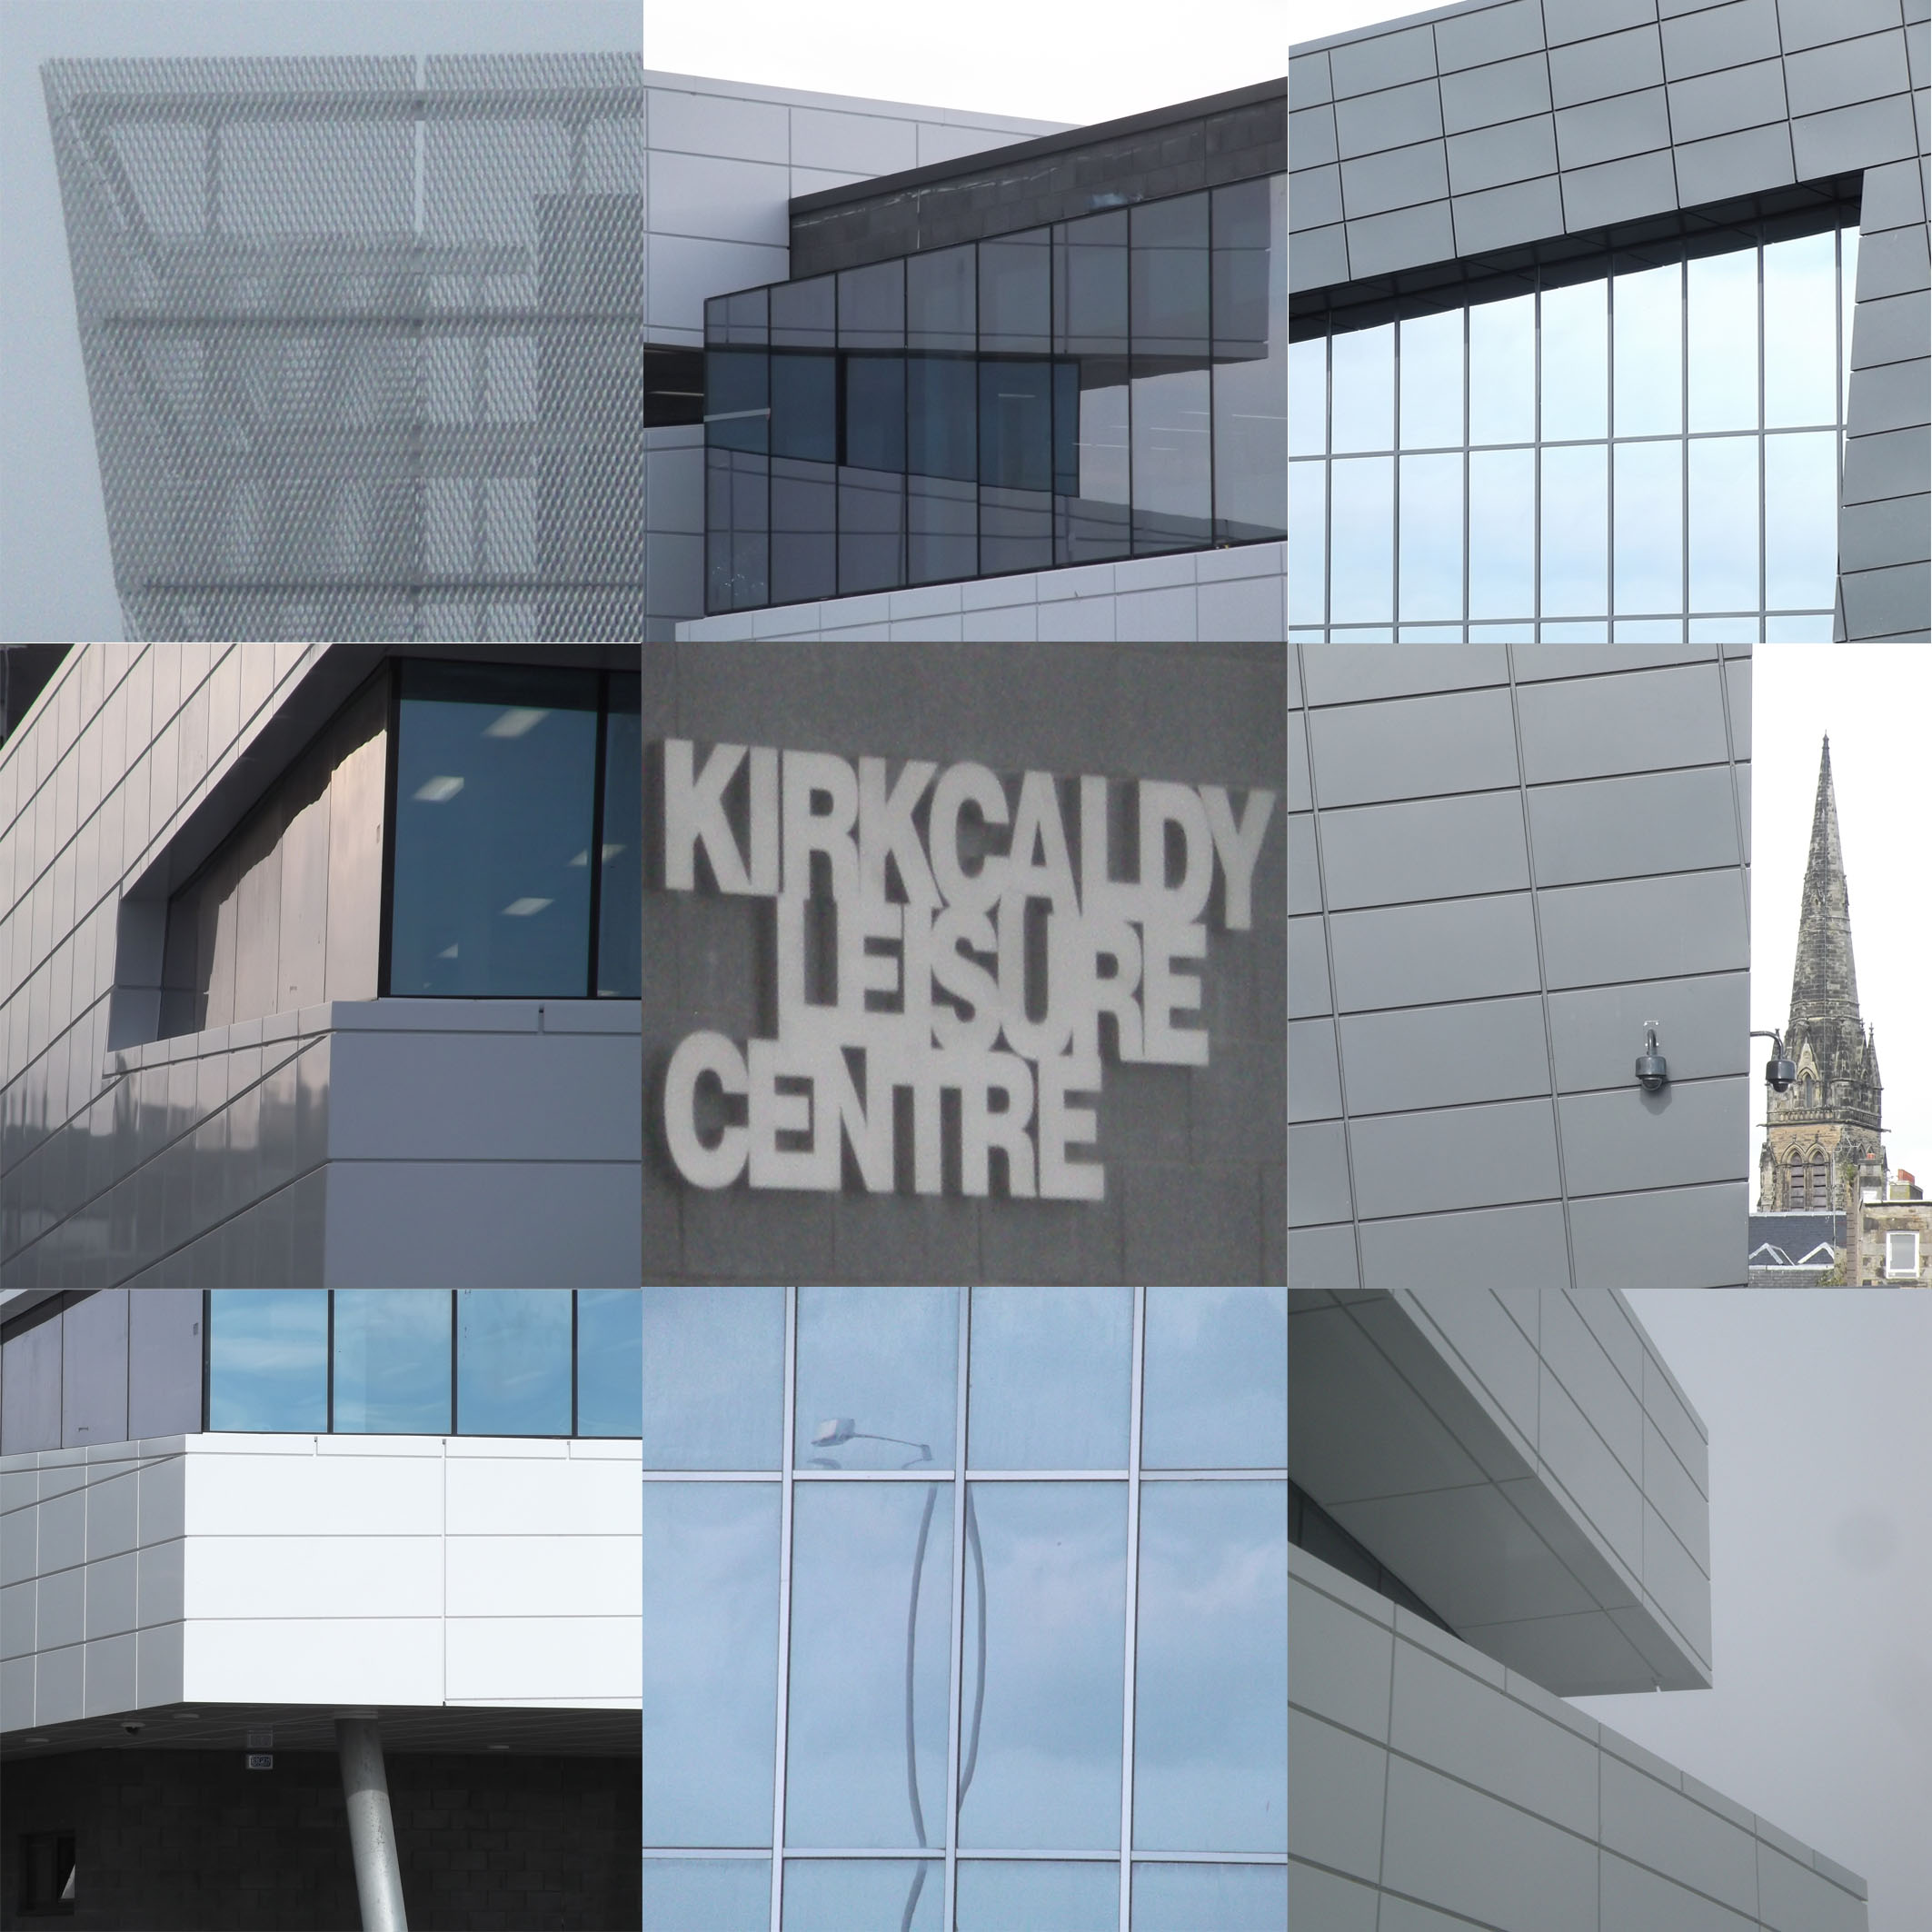 6 new kirkcaldy leisure centre 3 x 3 grid  18cm x 18cm